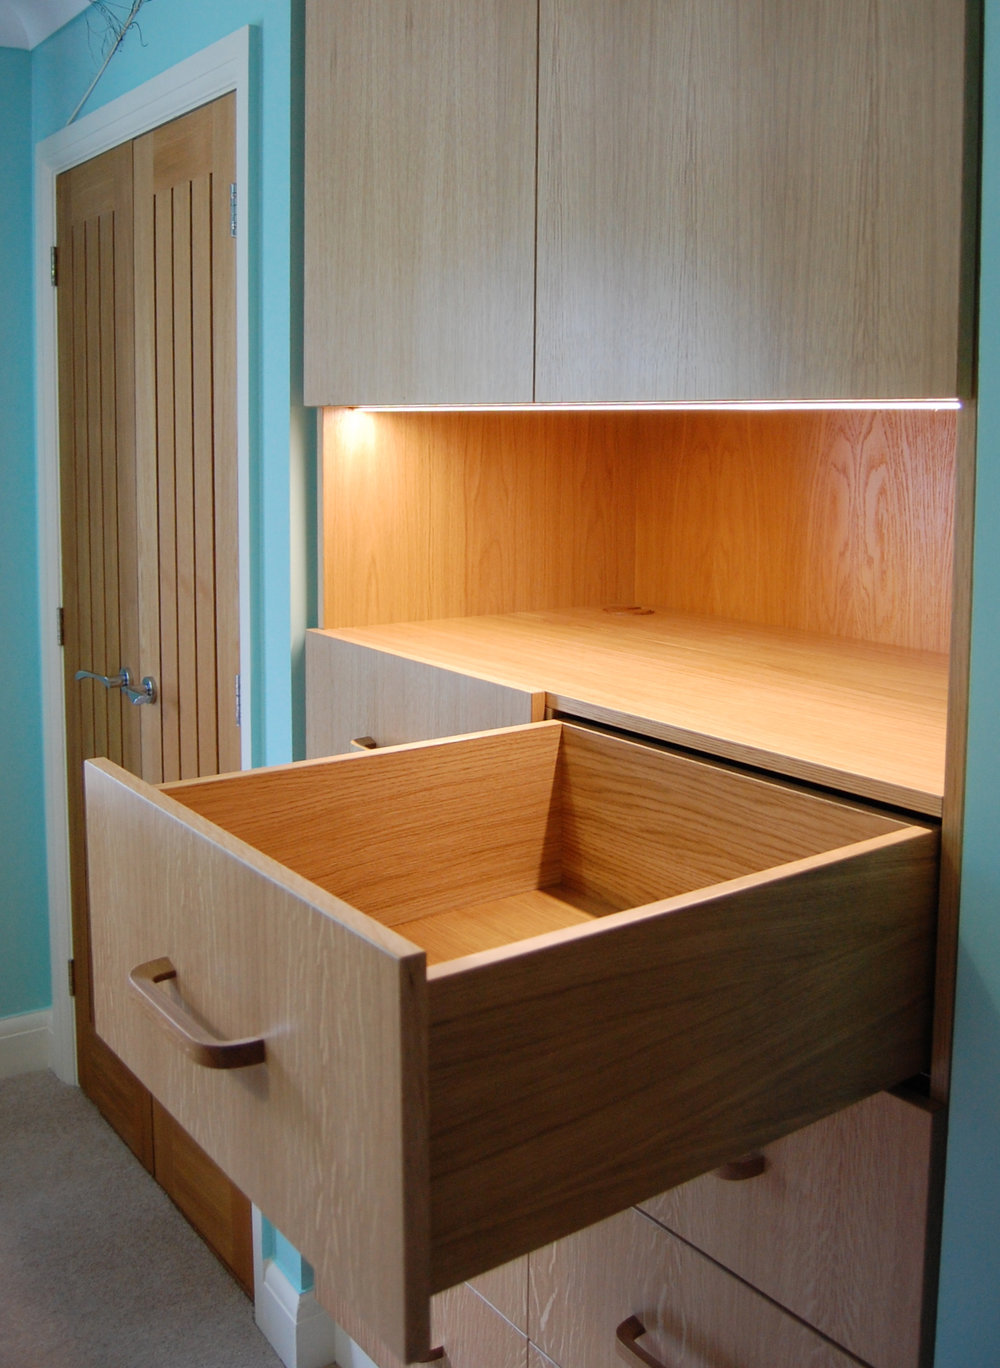 Grain_Bespoke_Furniture_Drawers_2.jpg